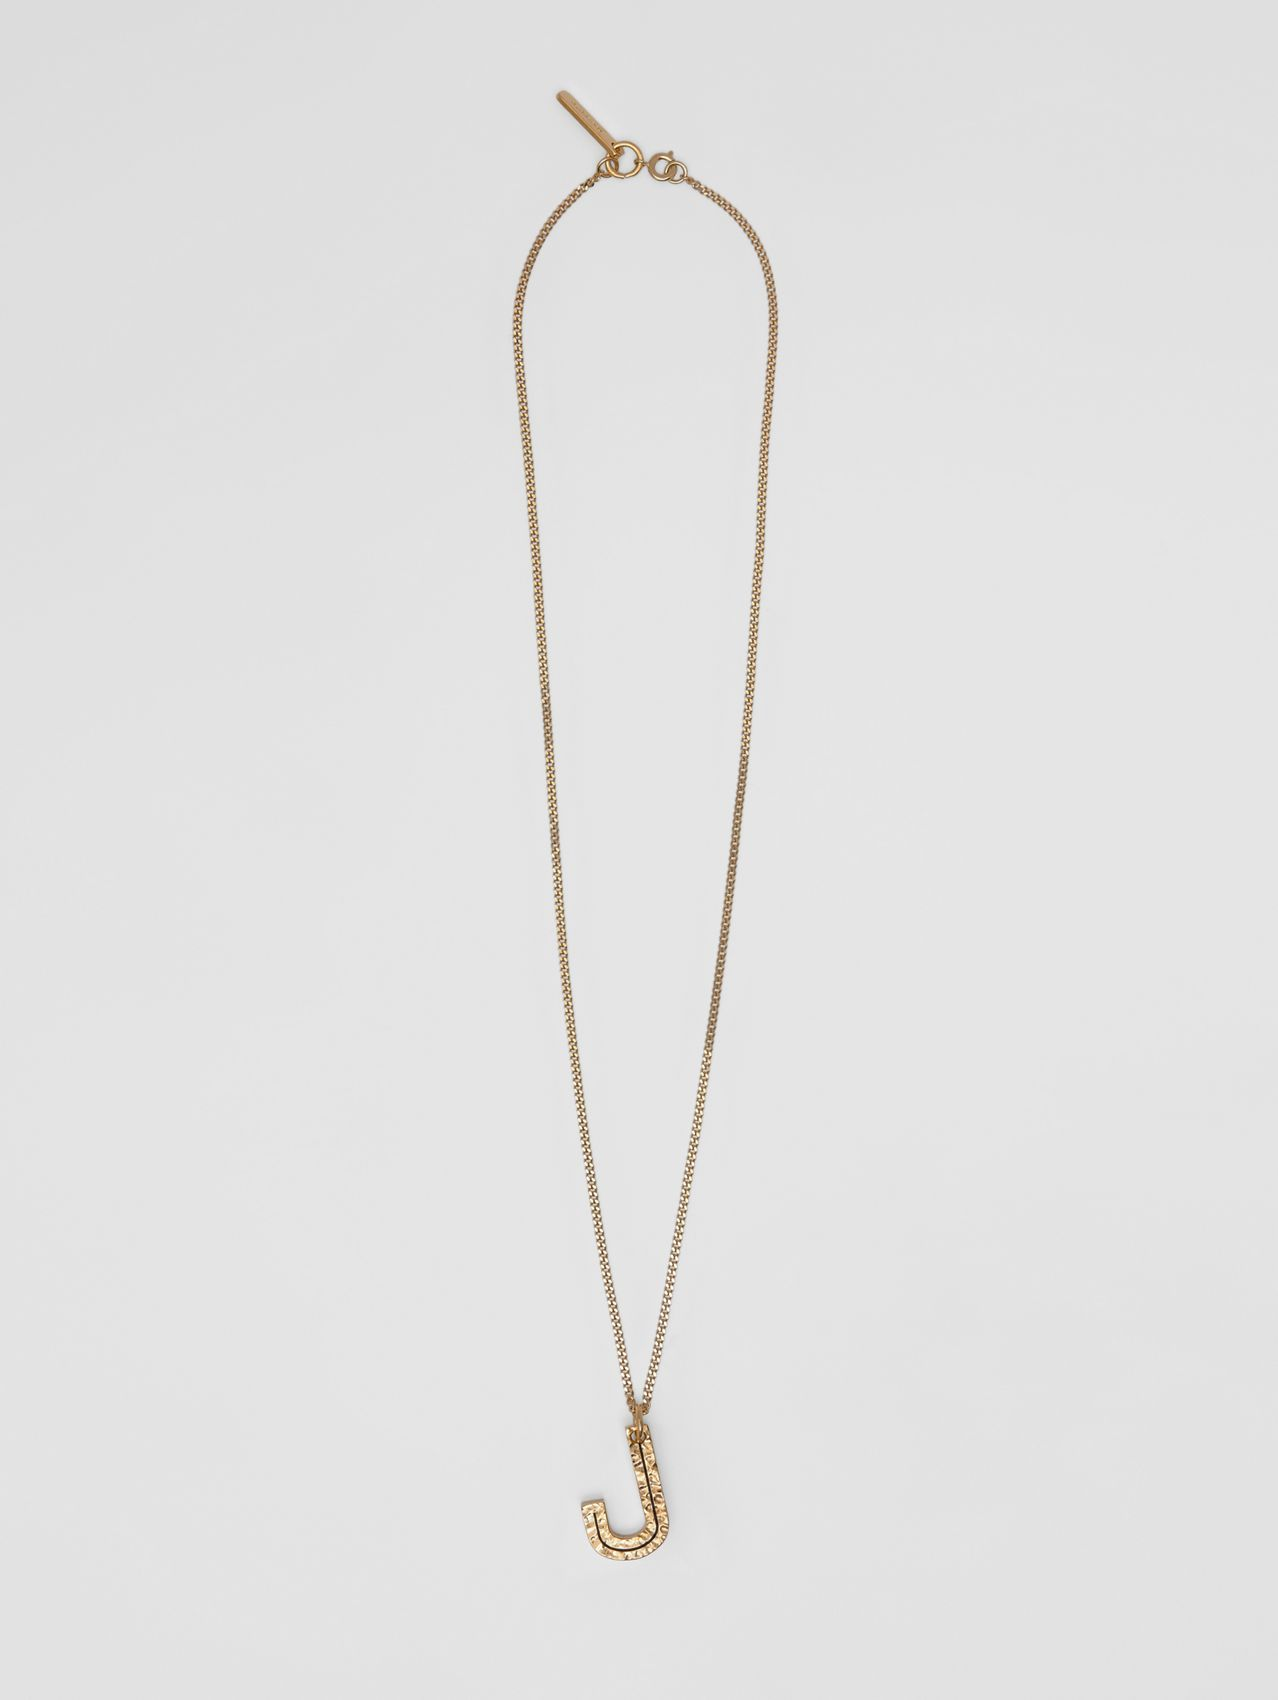 'J' Alphabet Charm Gold-plated Necklace in Light